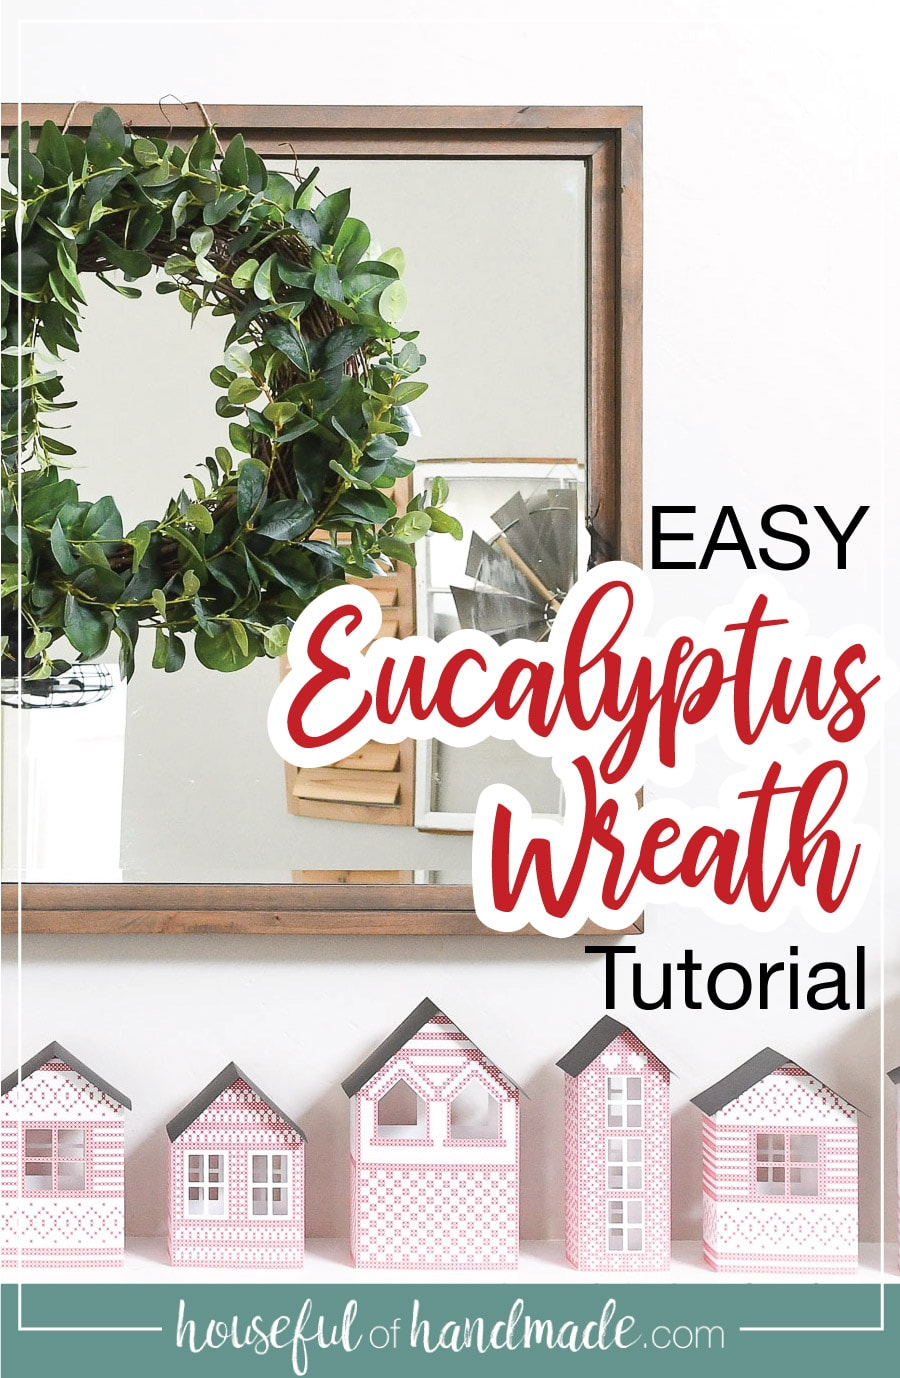 DIY Eucalyptus wreath over the mantel.